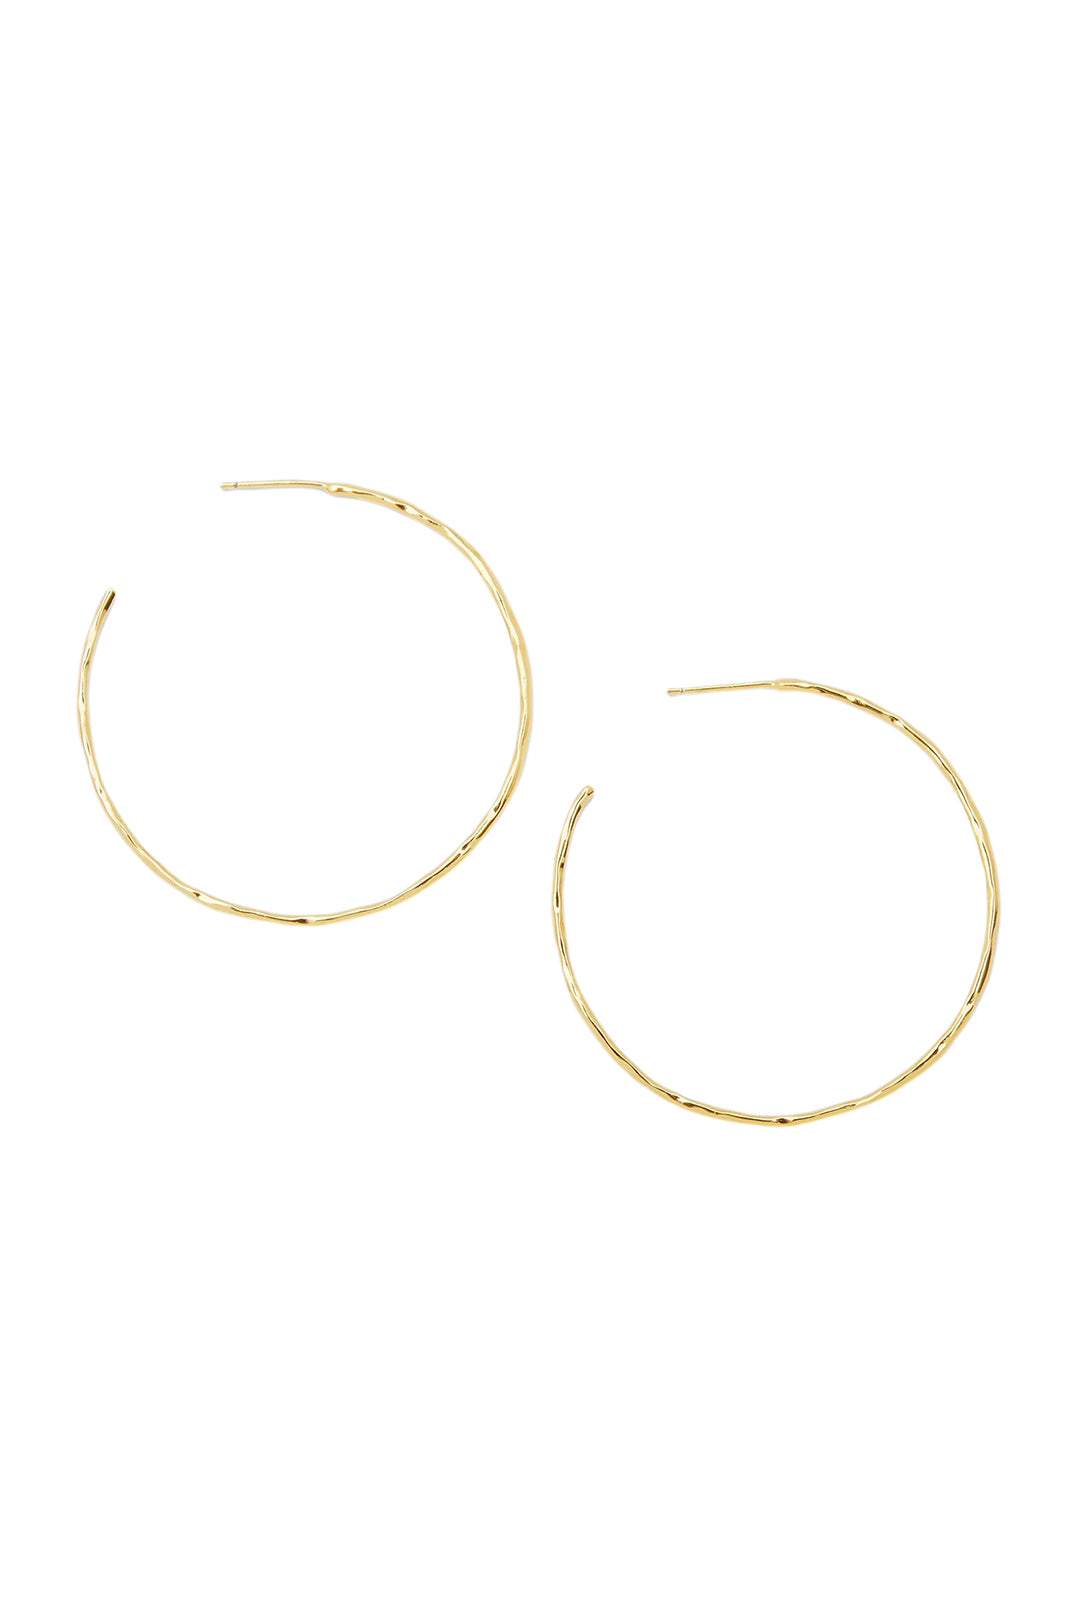 tanner gold hoops